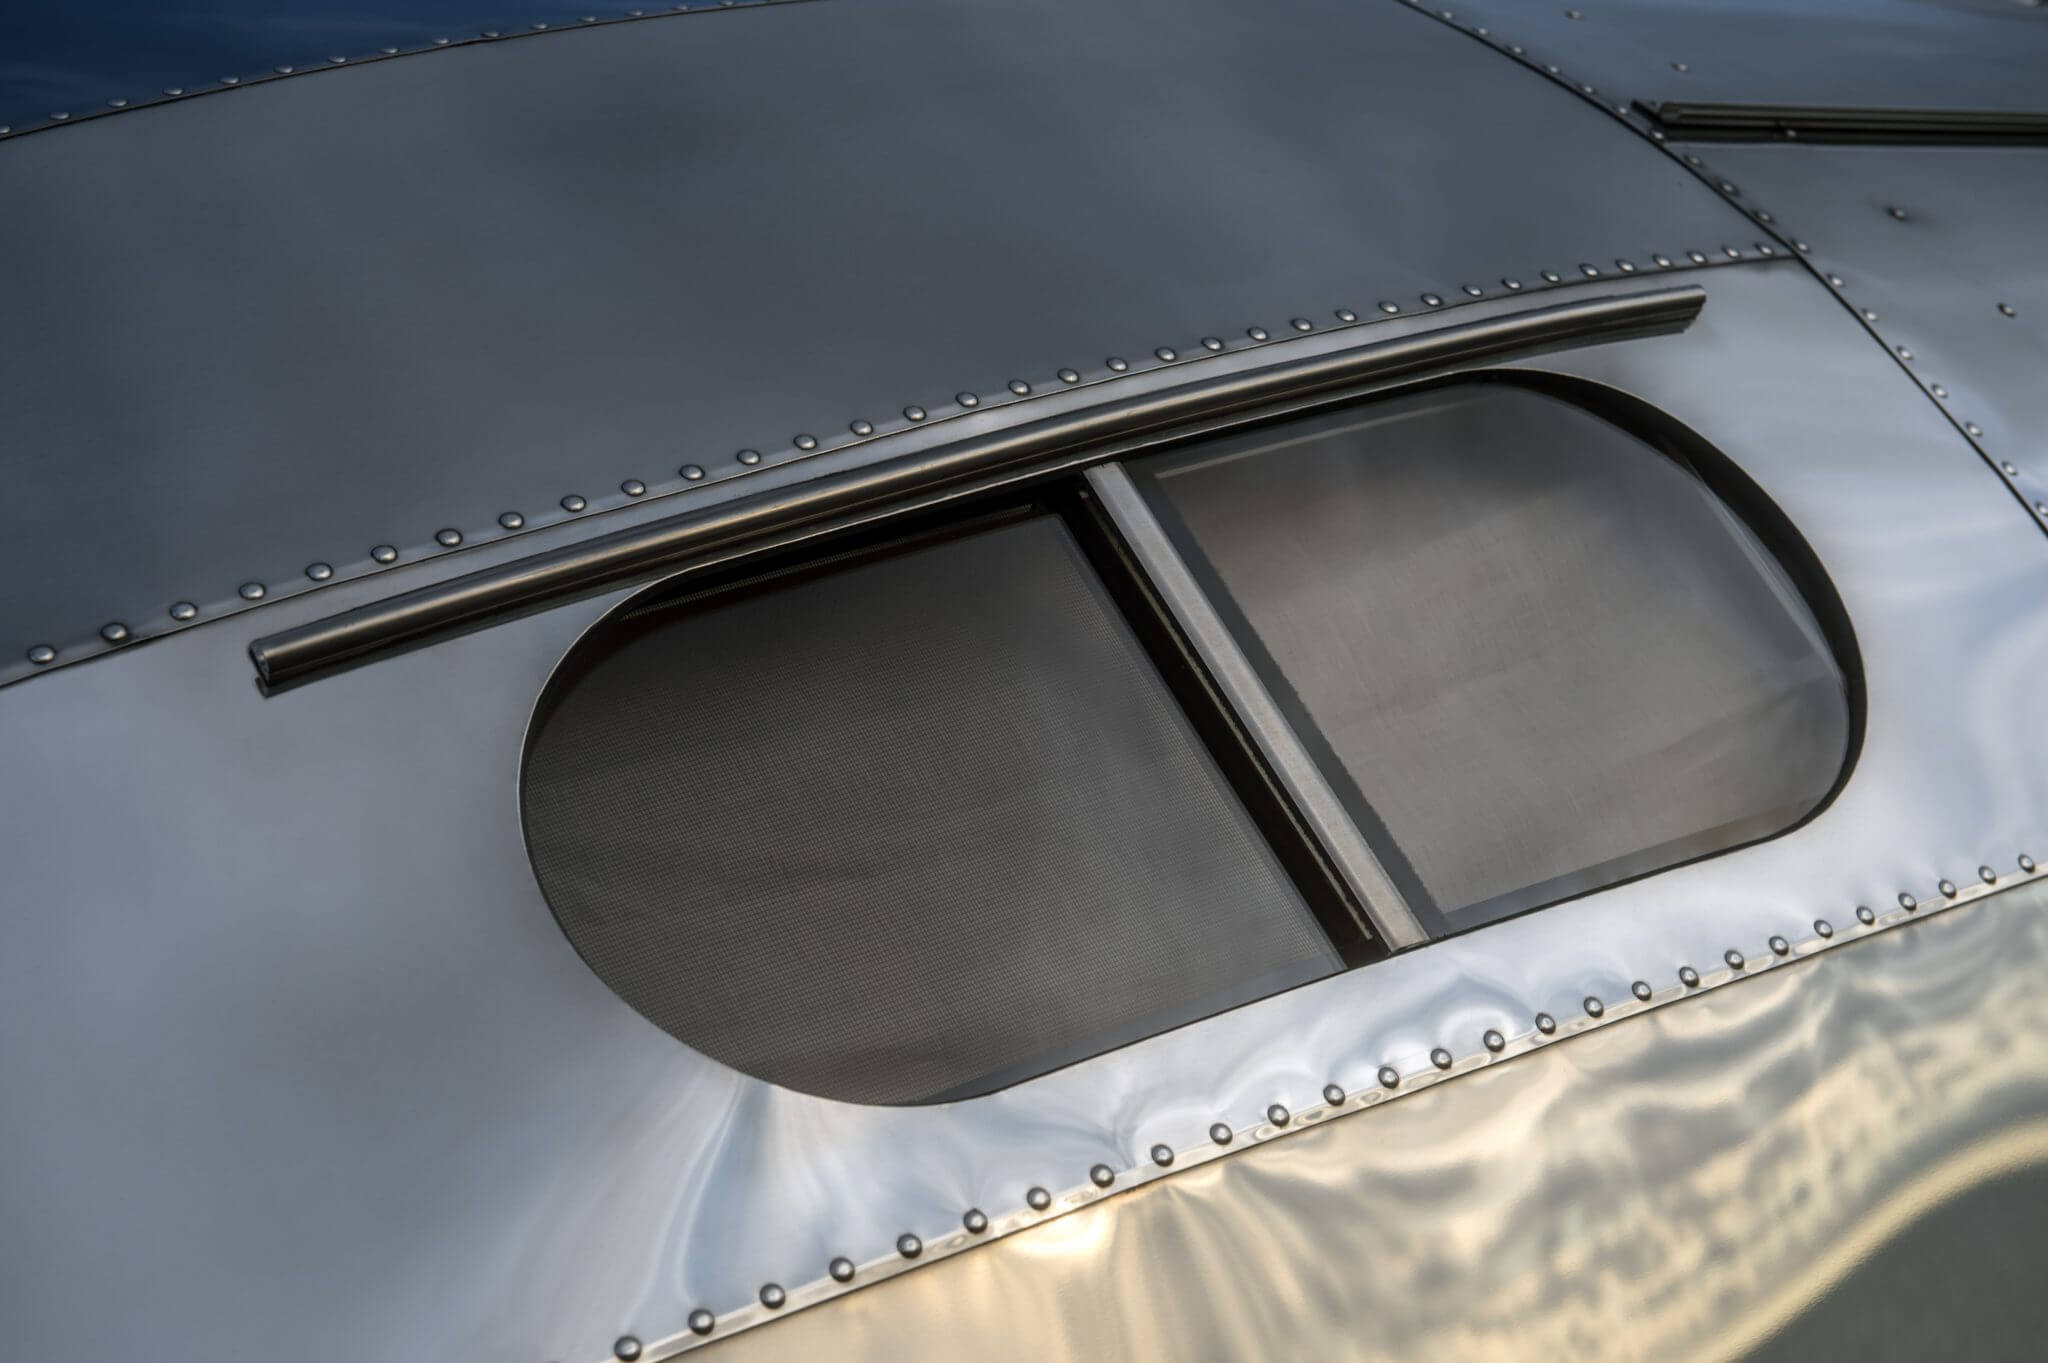 The Design Secret Behind the Road Chief's Incredible Strength